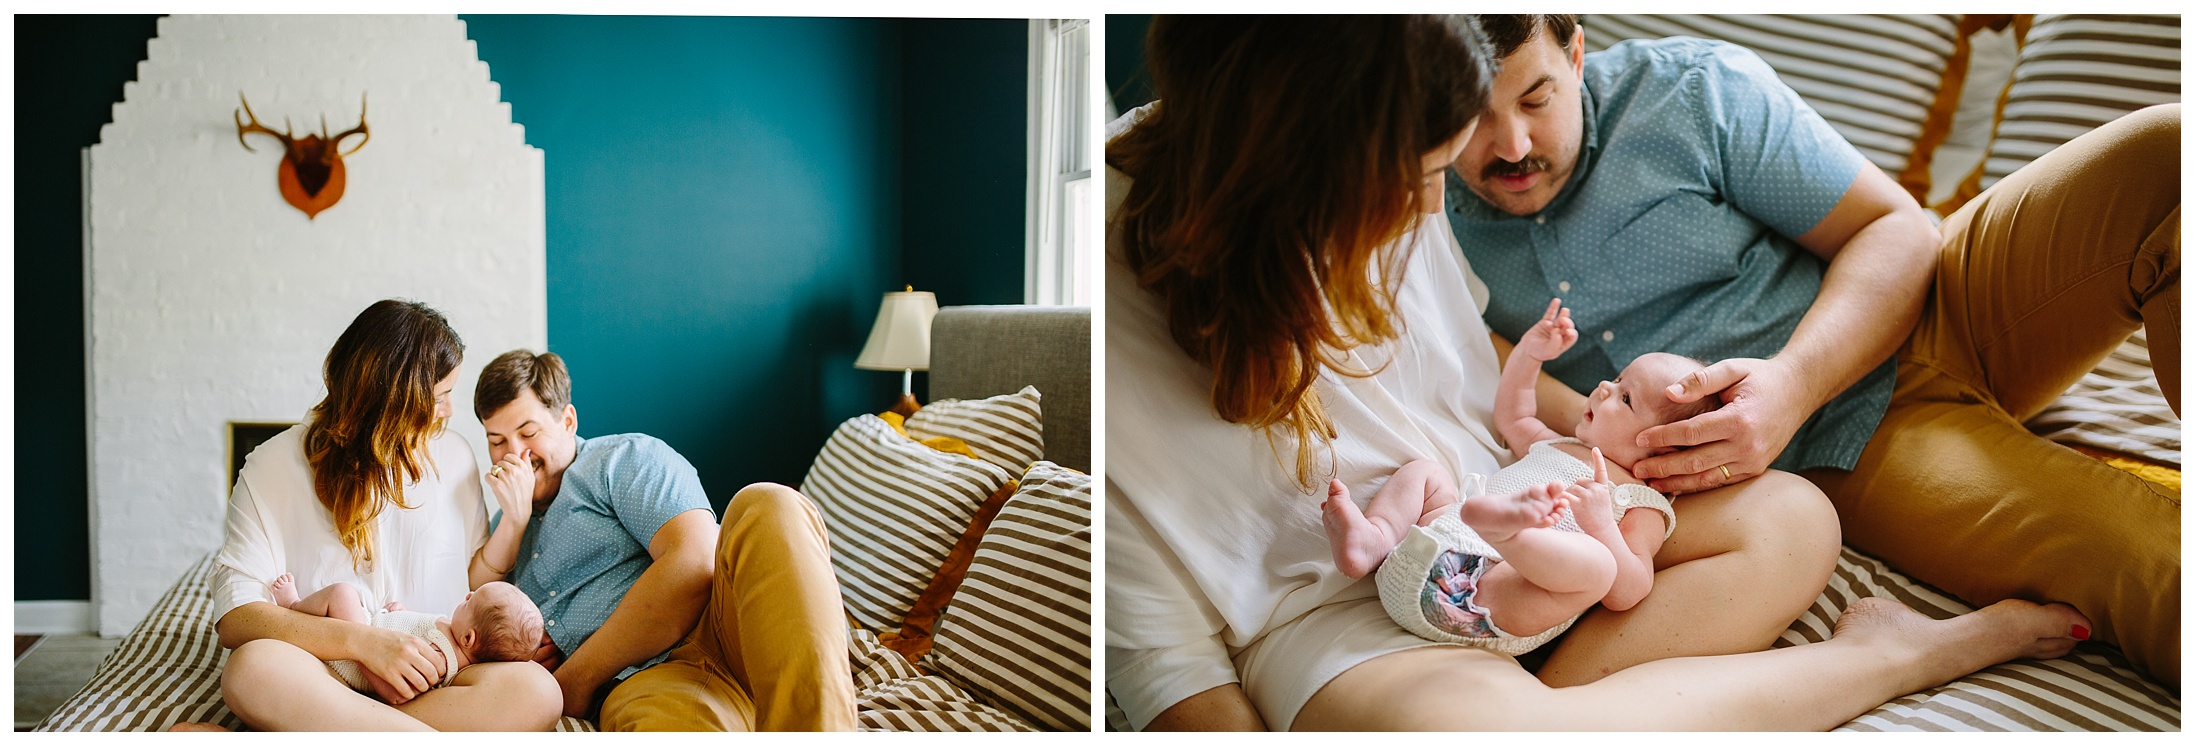 family documentary photography newborn session in home chattanooga tn